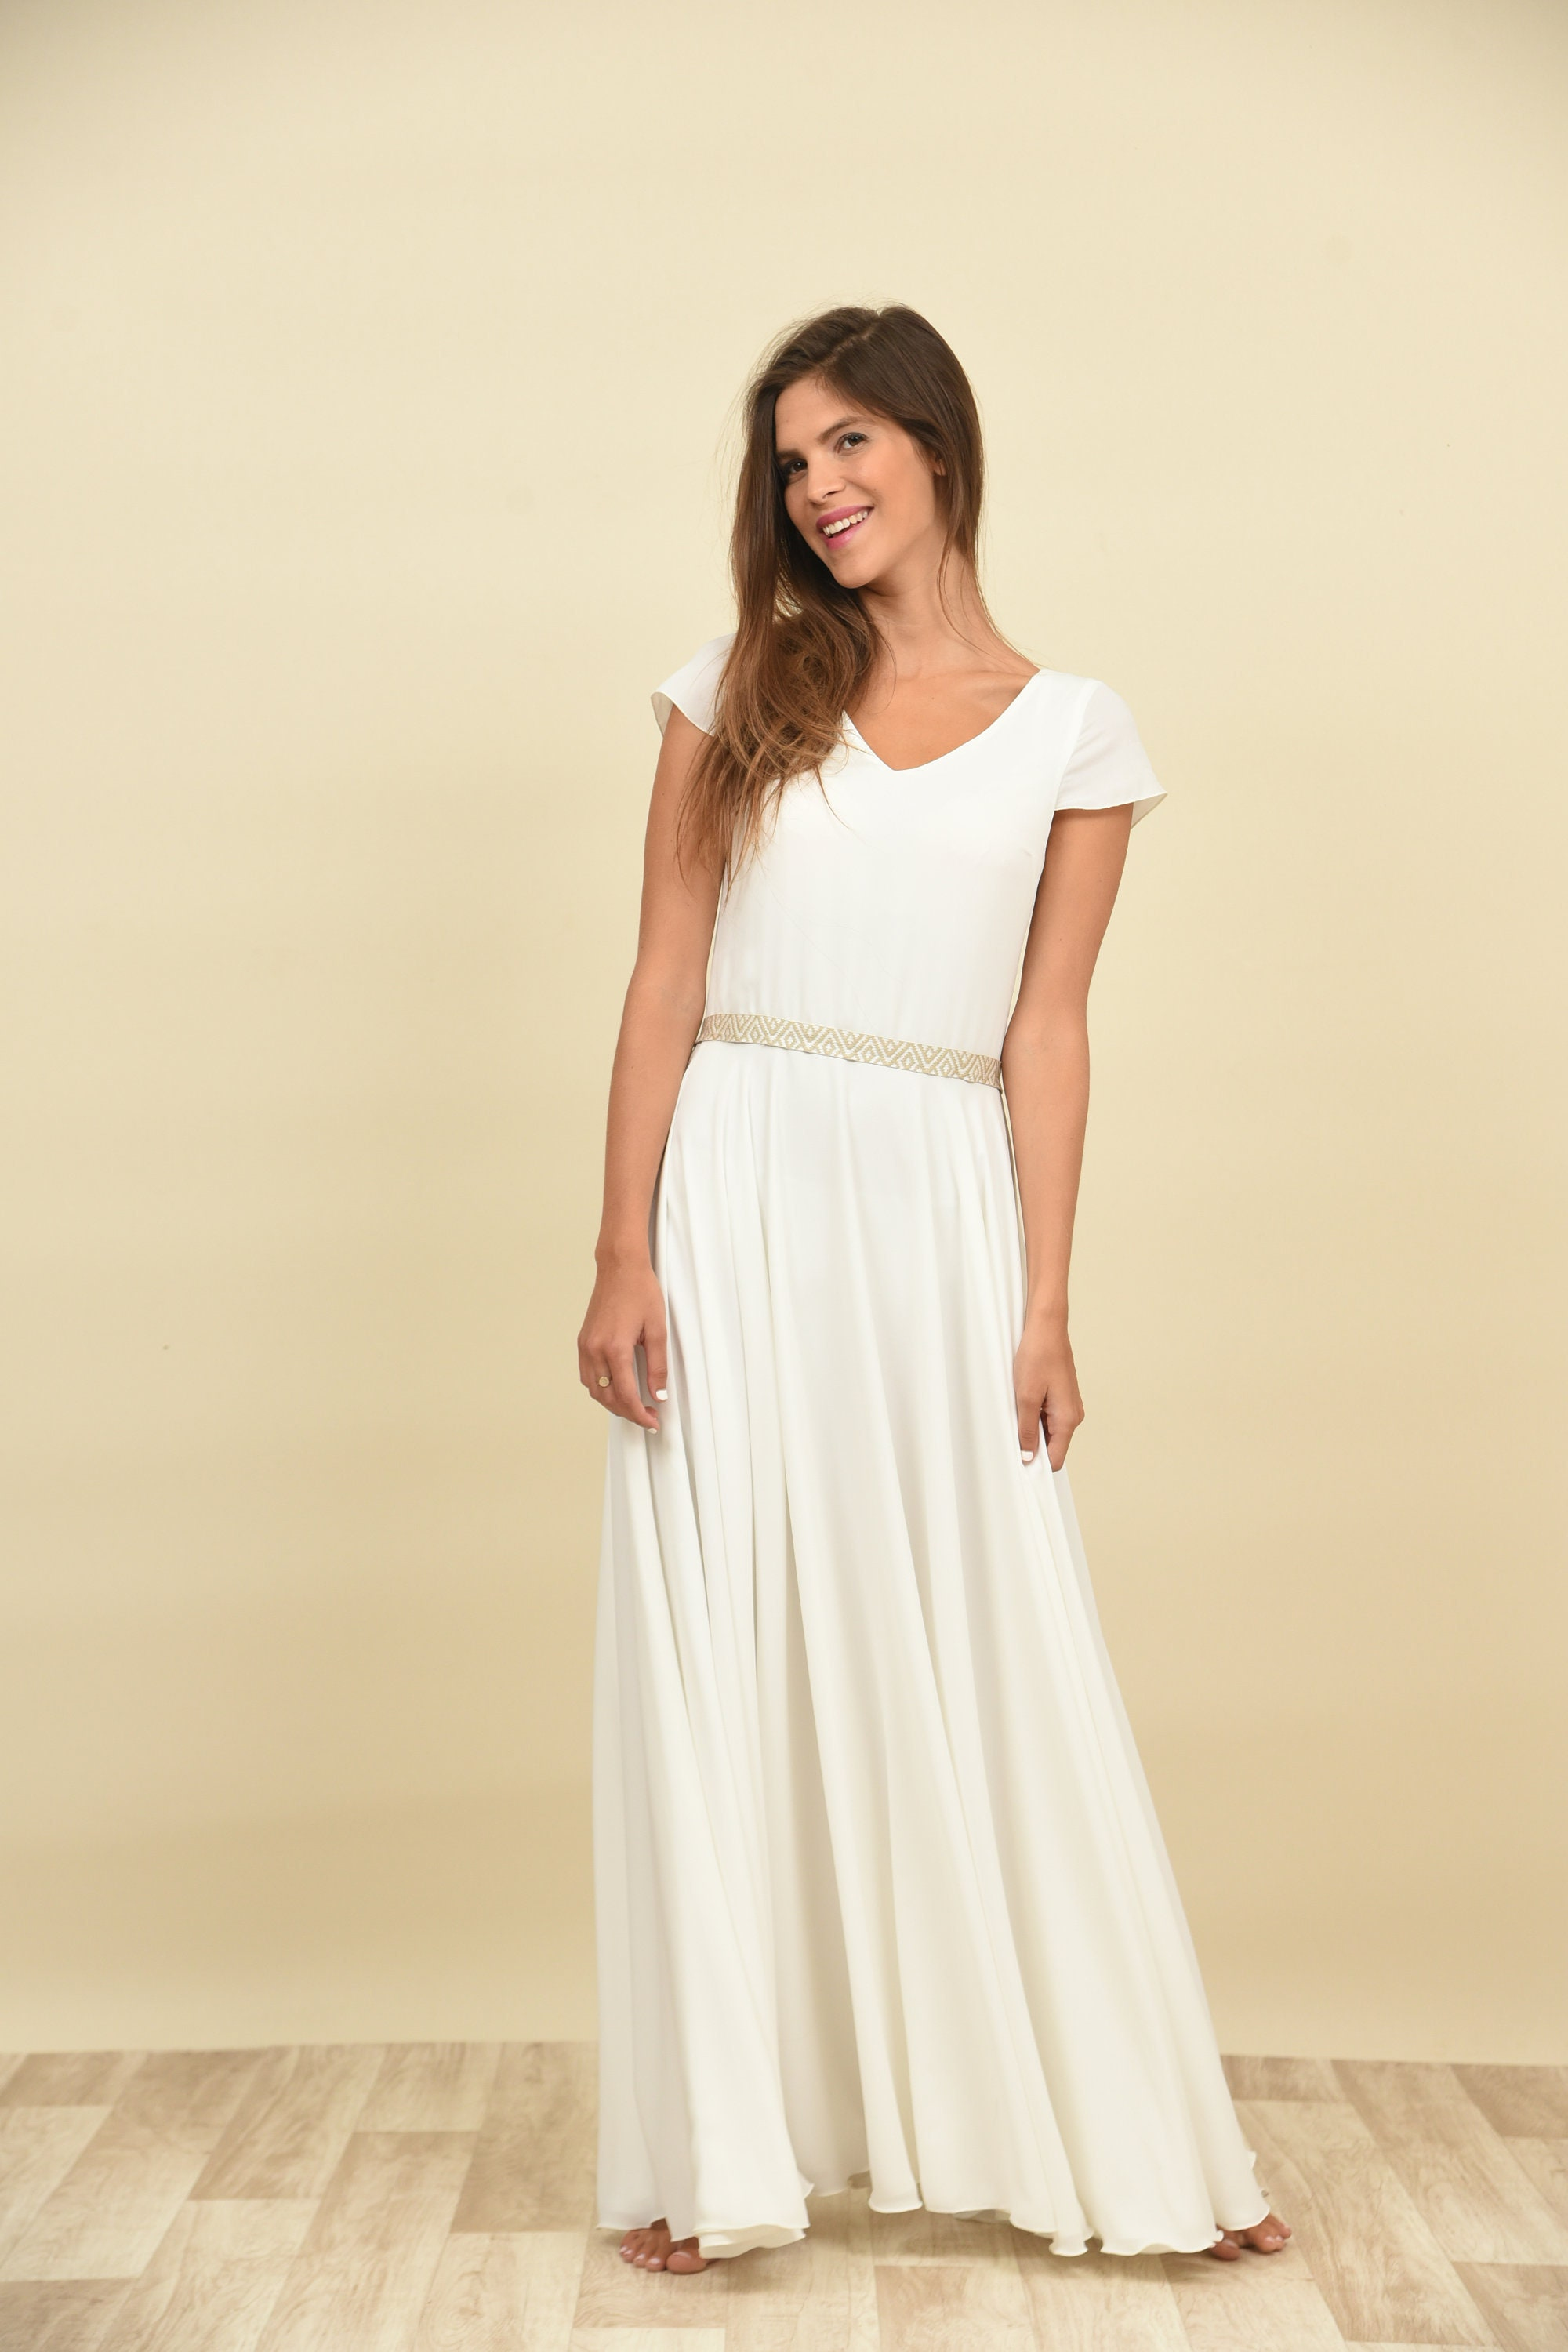 Simple Wedding Dress Maxi Lace Gown Dress For Wedding Etsy